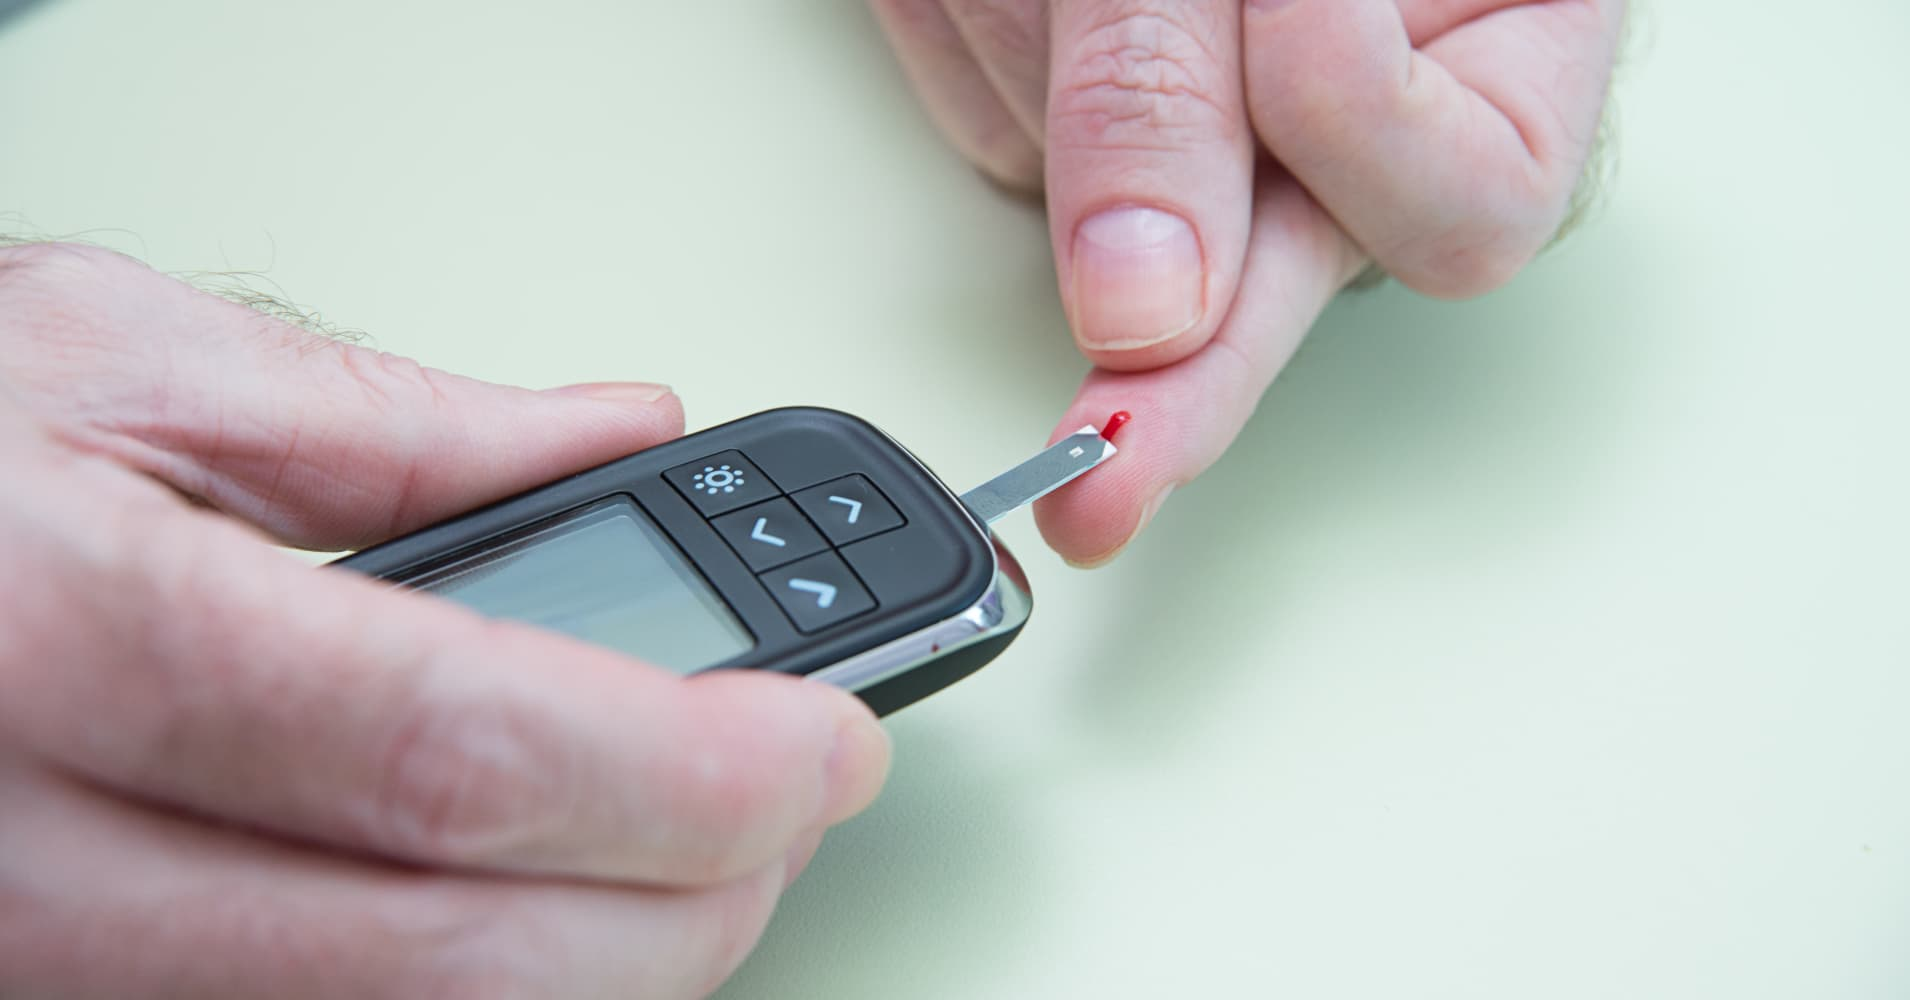 A man with diabetes takes a blood sugar level test.